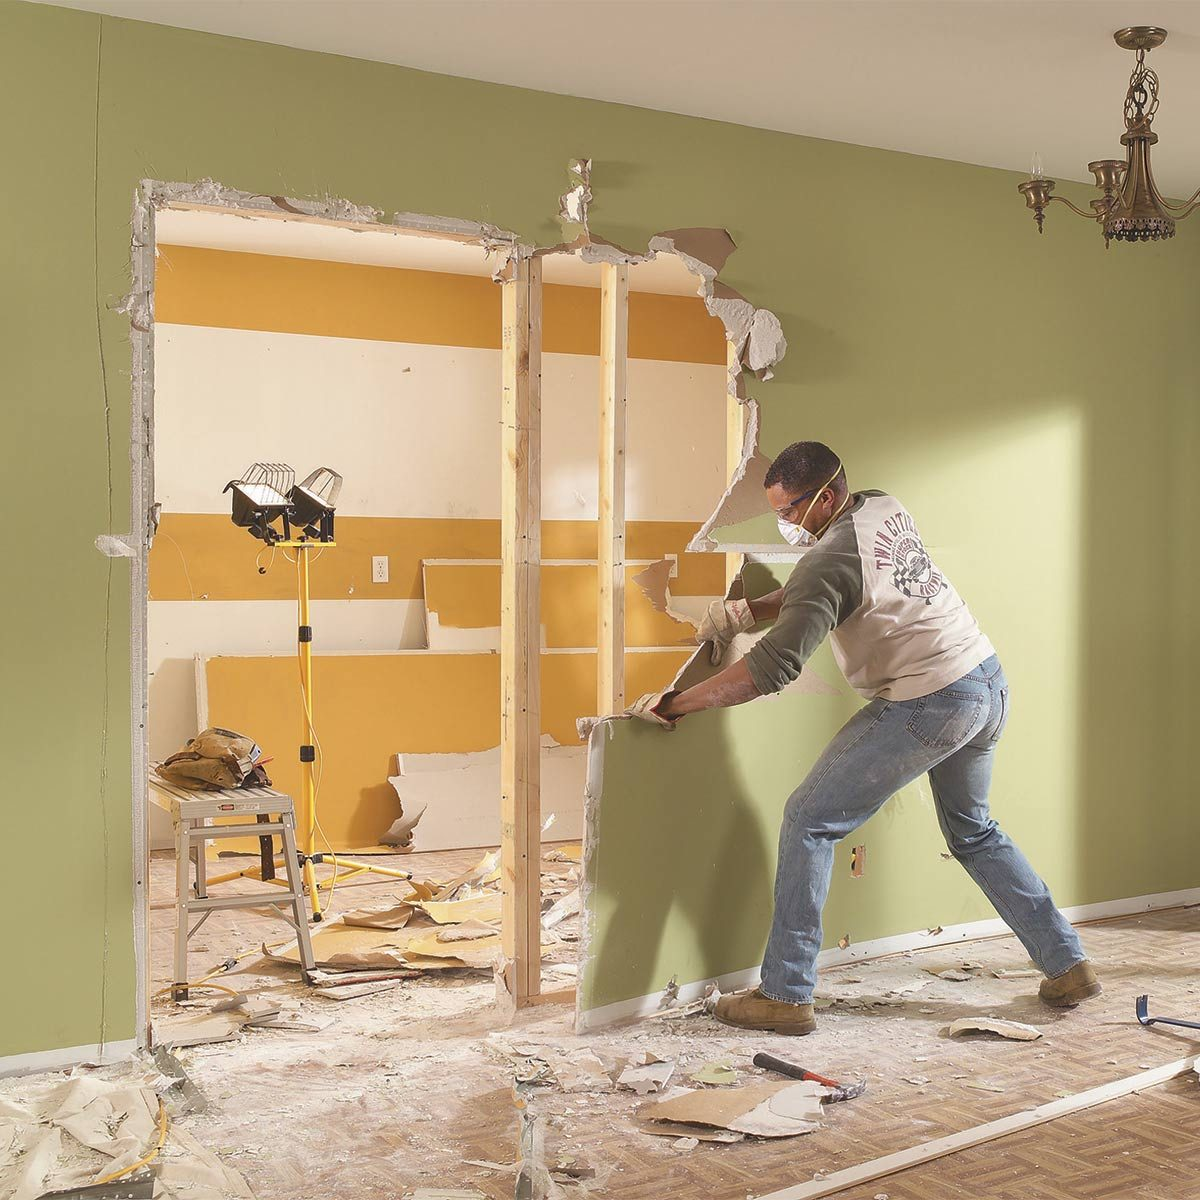 51 Diy Demolition Tips You Need To Know The Family Handyman